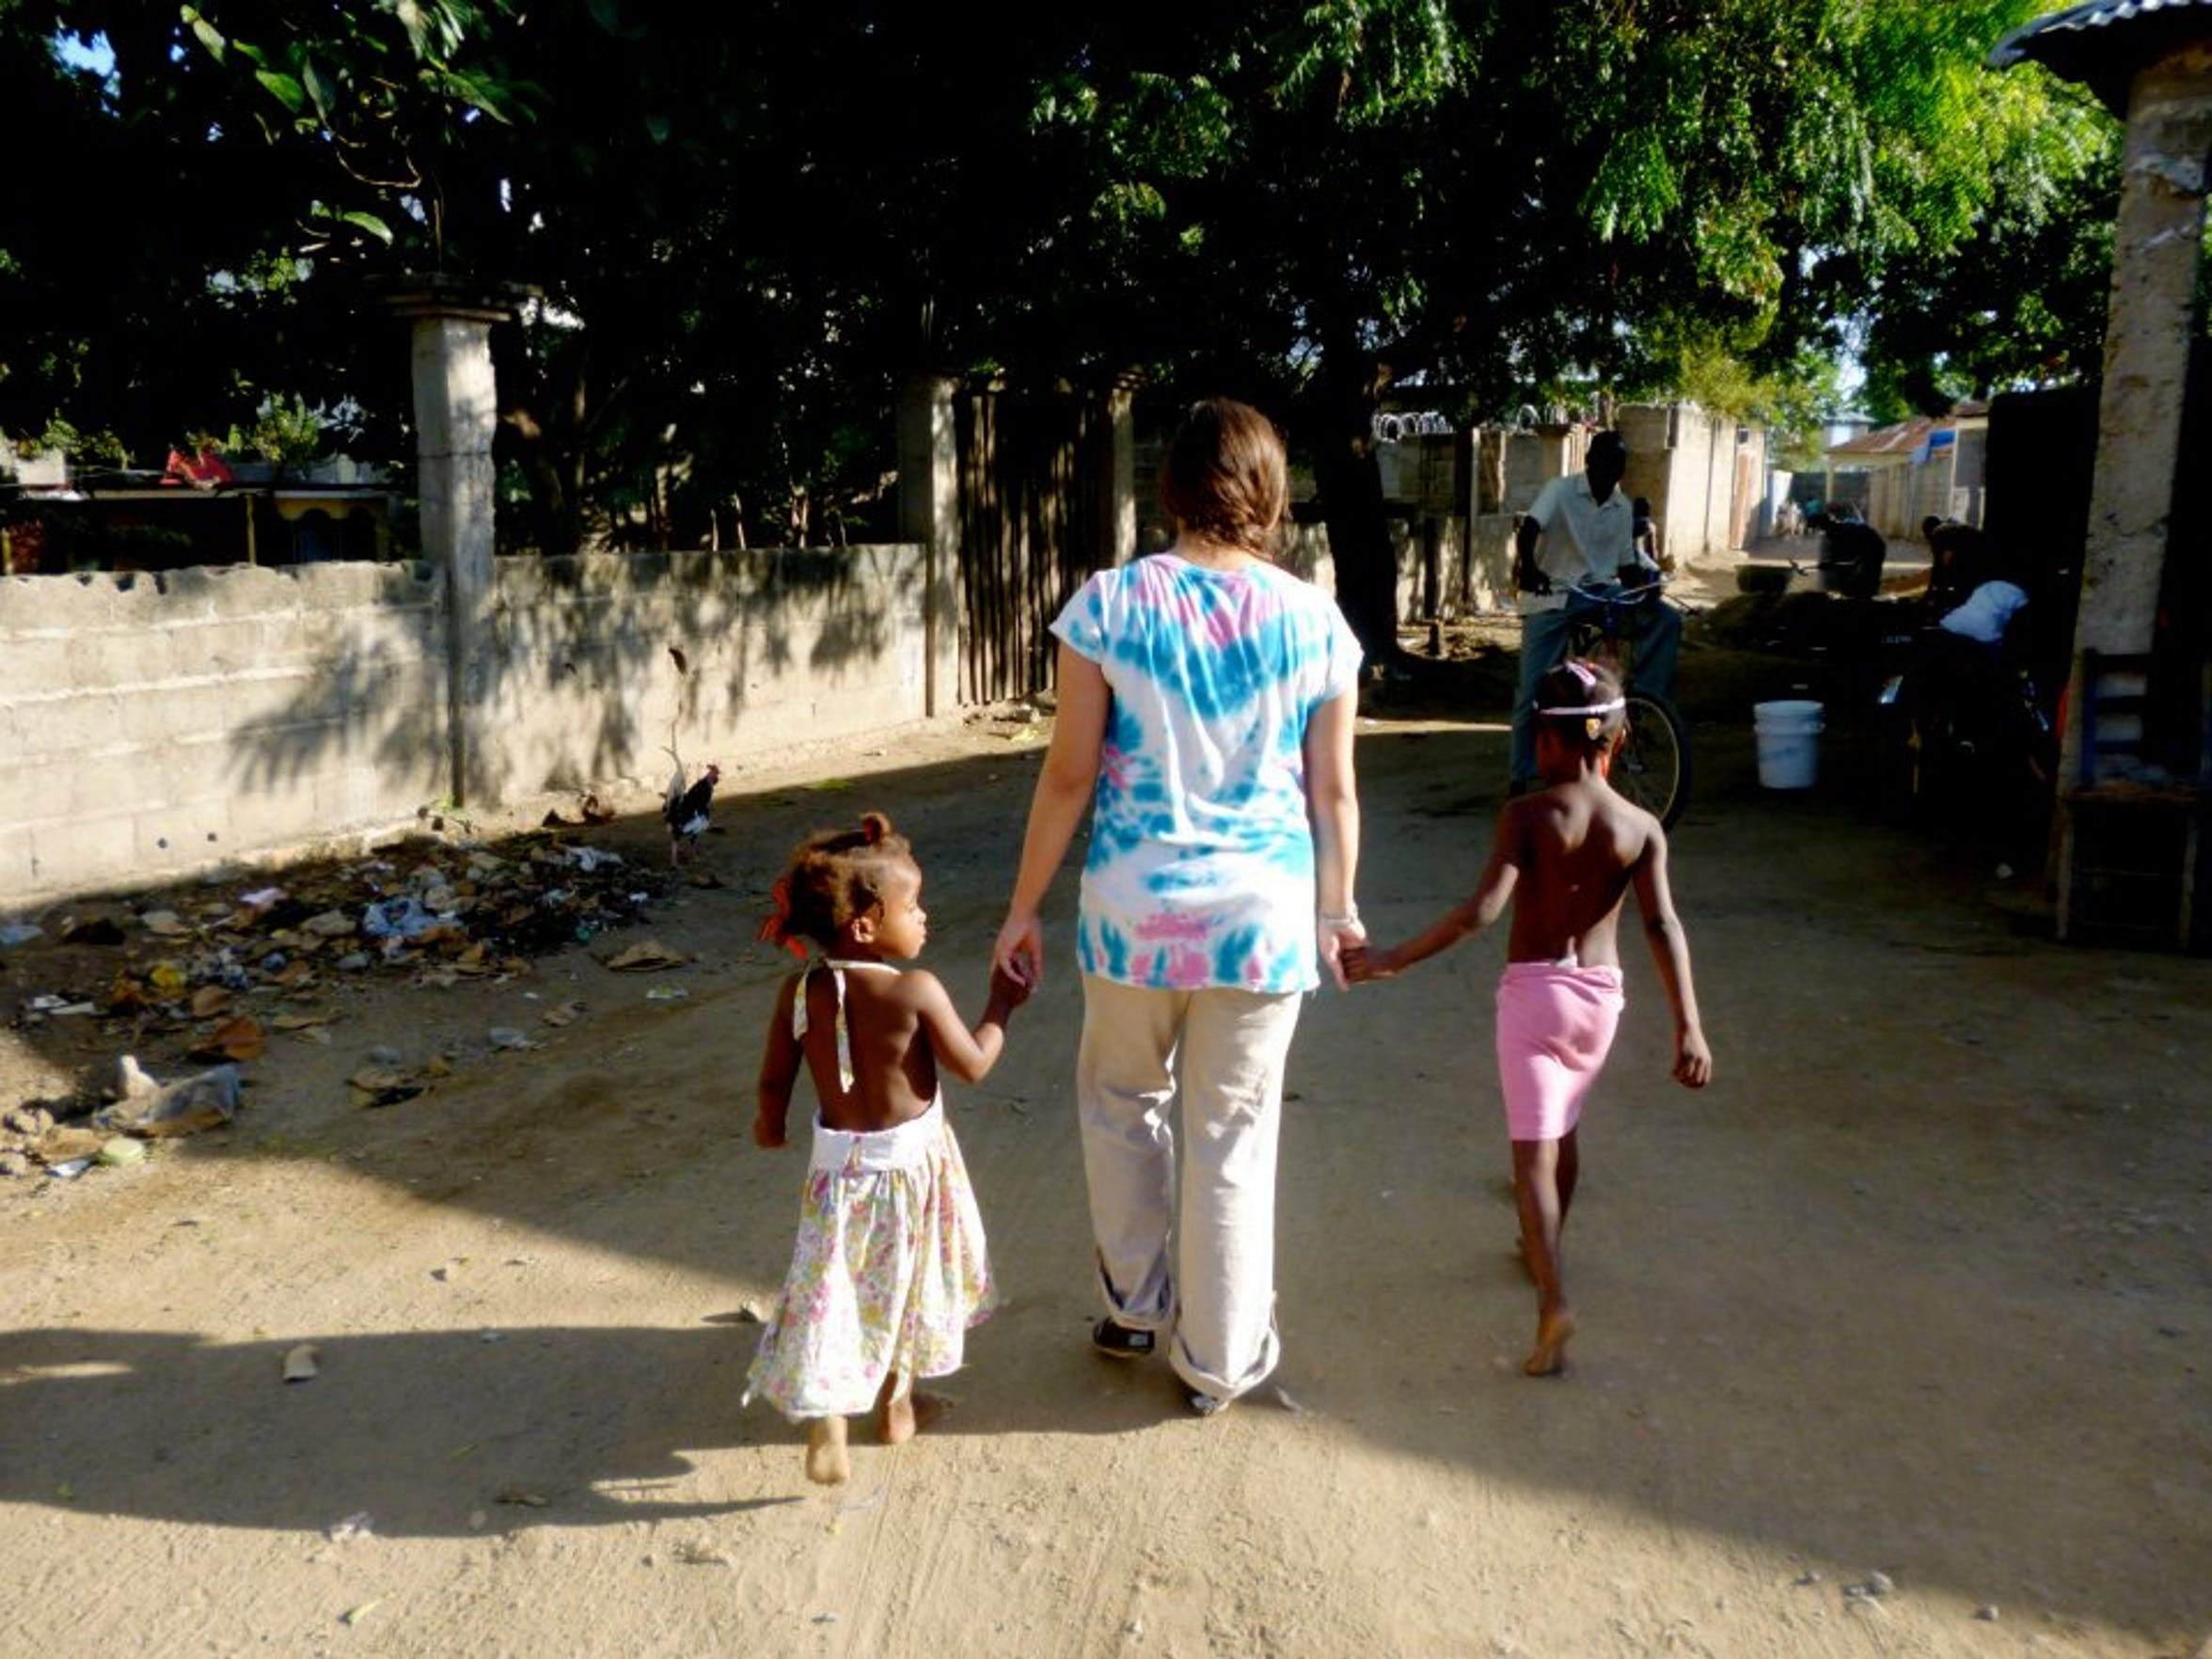 A look back at one of Sarah's first missionary trips to Haiti.